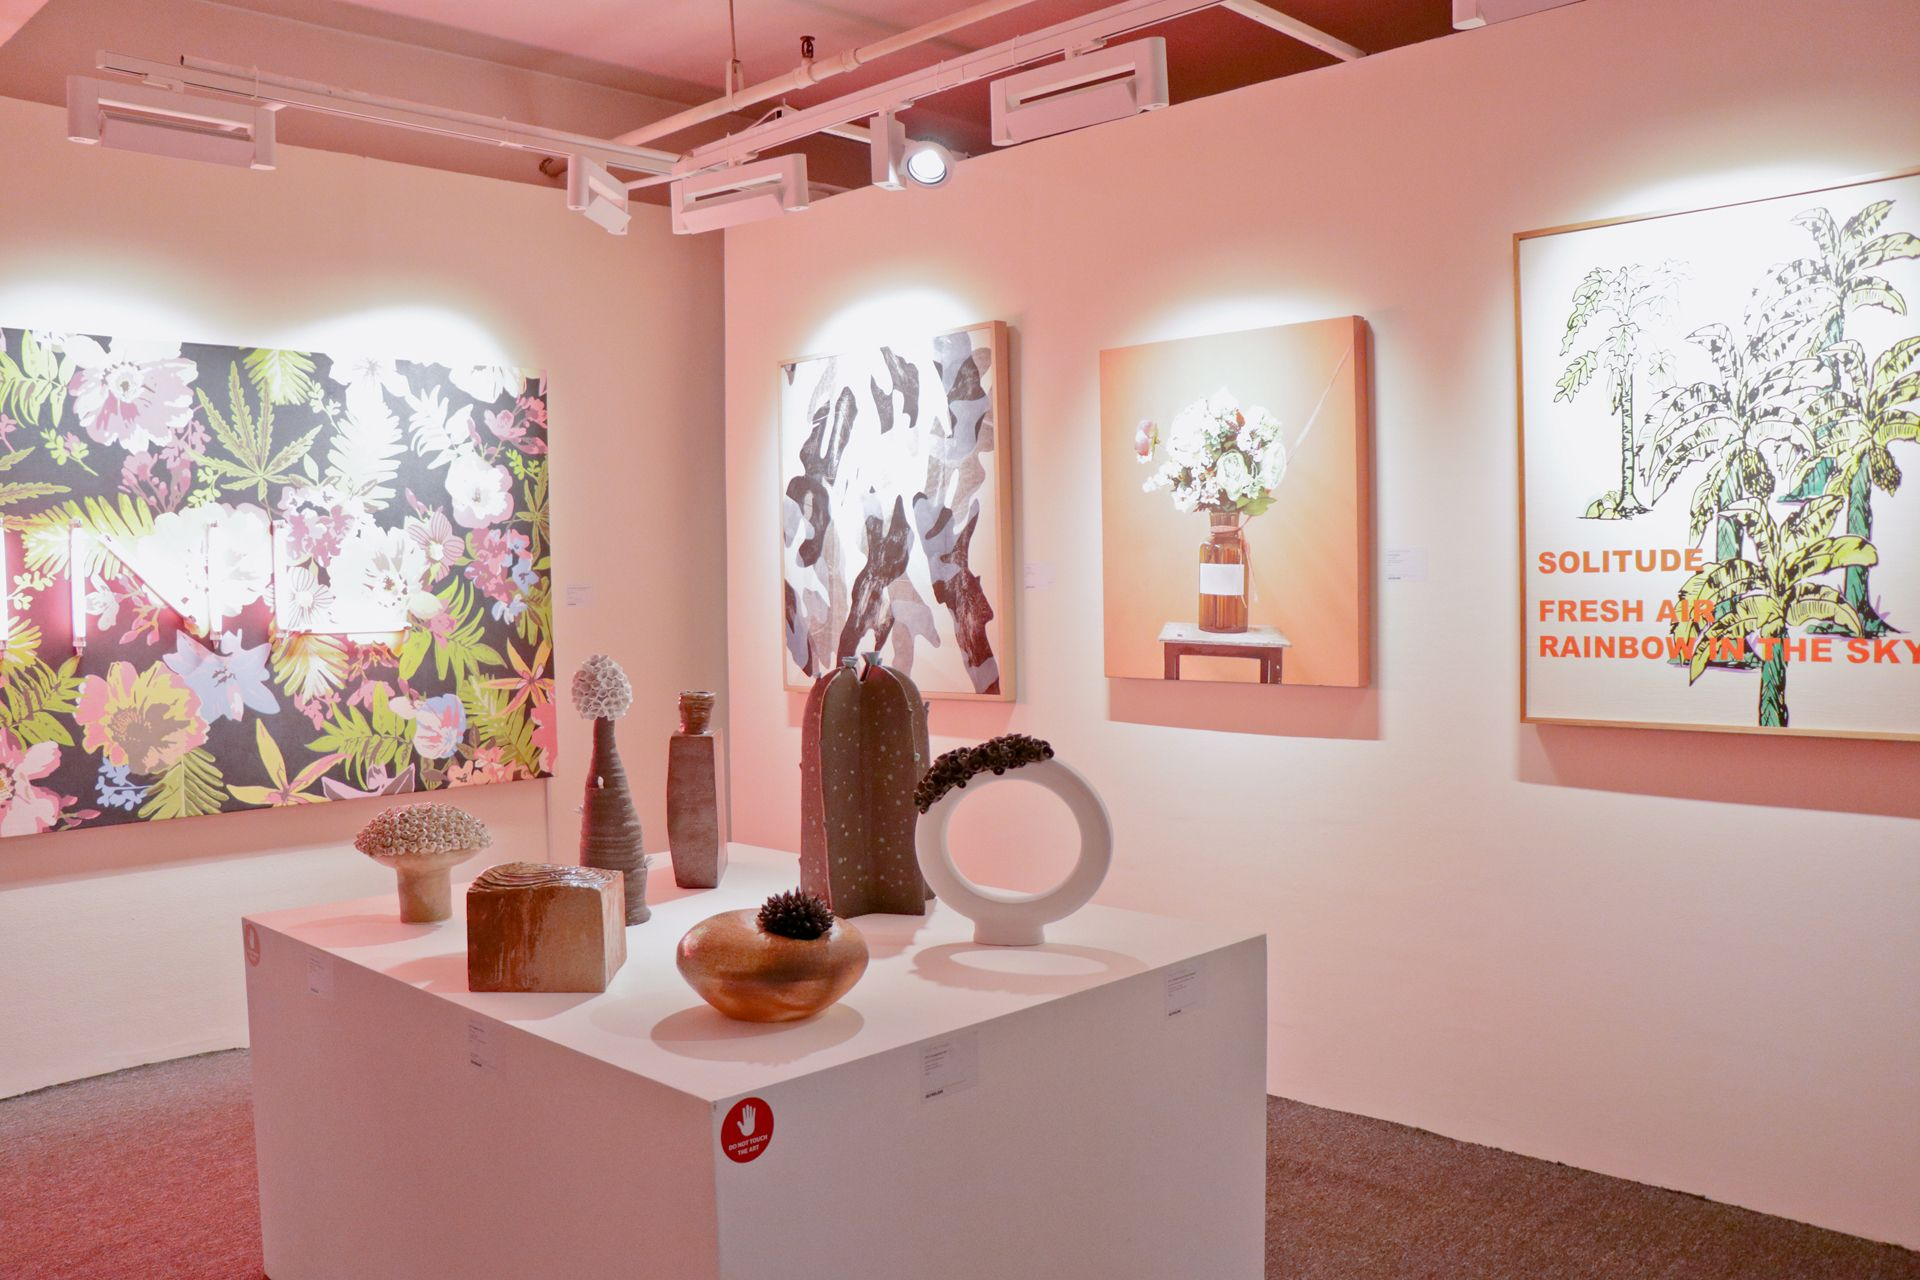 9 Things You Shouldn't Miss At This Year's Art Fair PH